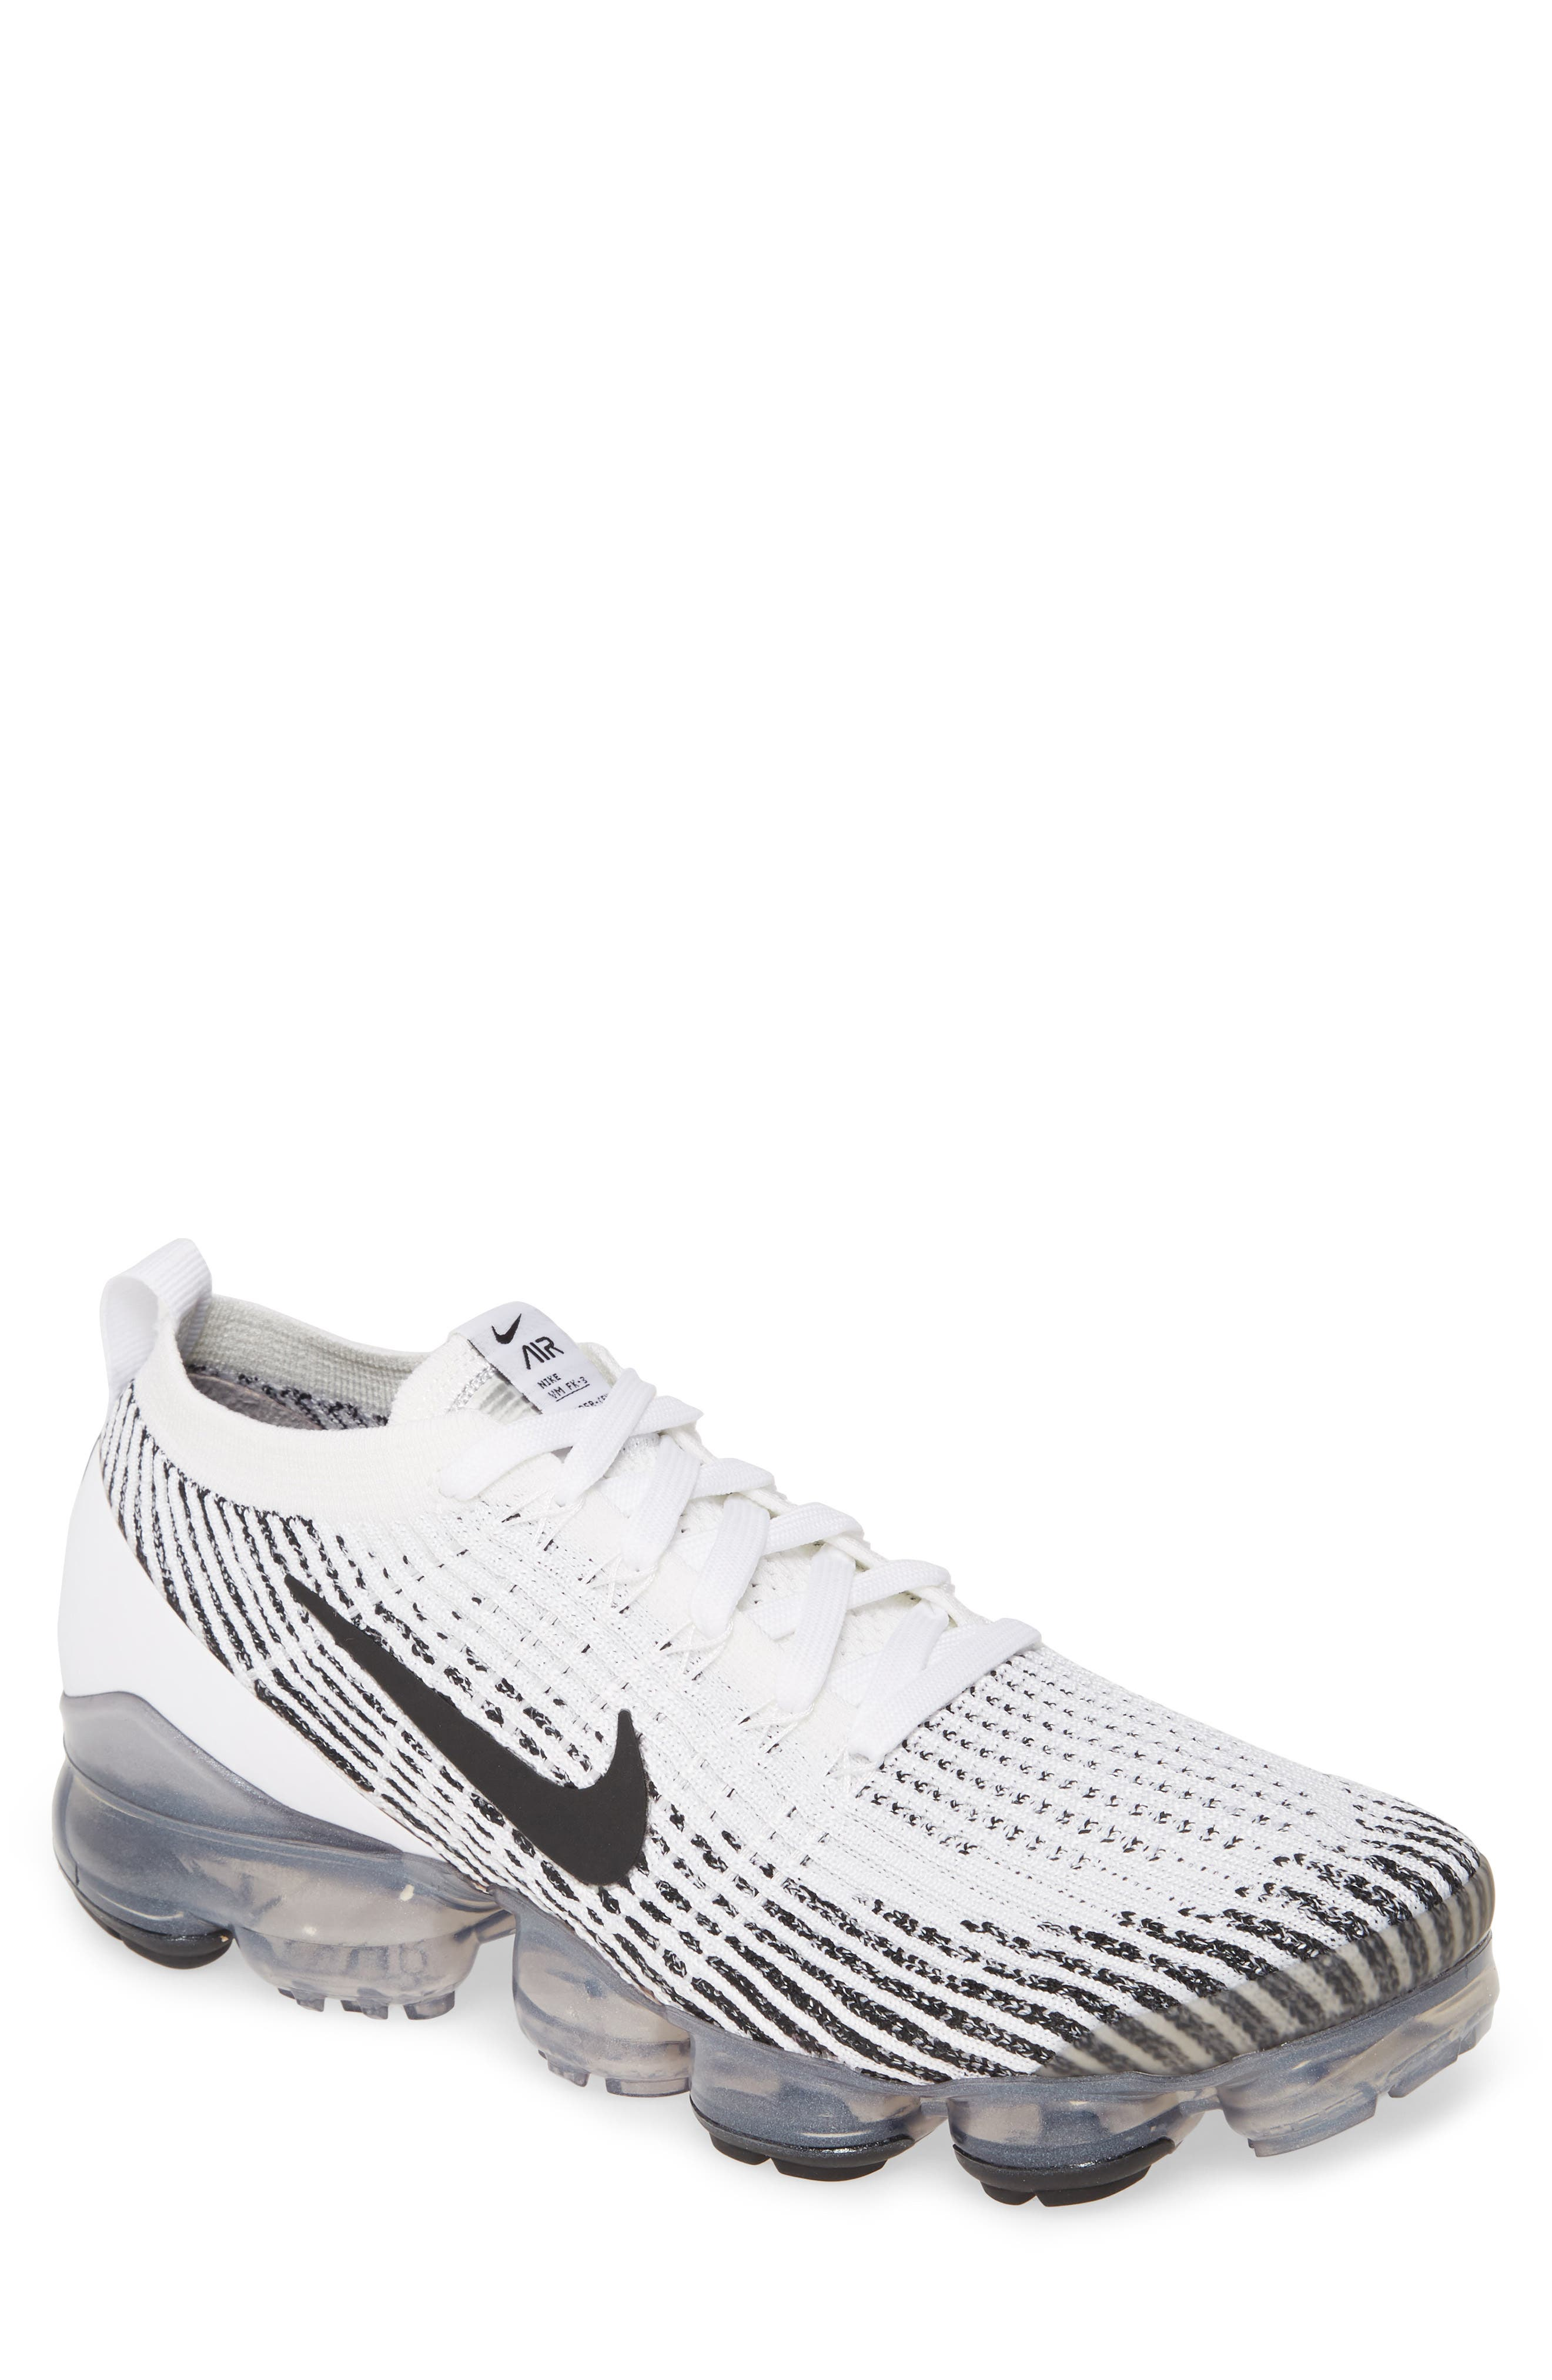 Mens: Christmas Limited Nike Air Max Classic BW Men Sports